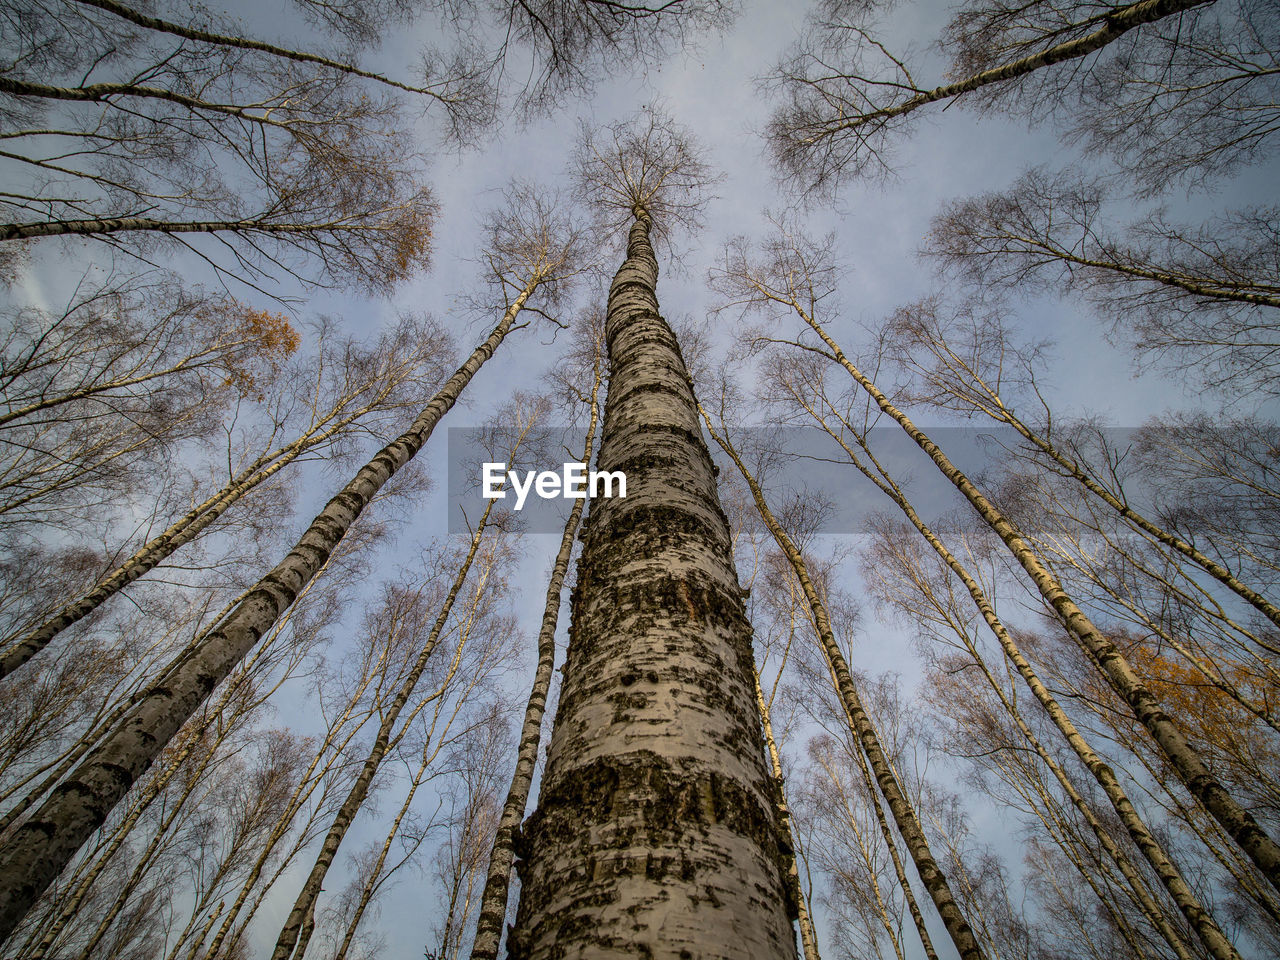 tree, low angle view, tree trunk, trunk, plant, tall - high, no people, forest, nature, sky, tranquility, growth, land, day, outdoors, wood - material, directly below, beauty in nature, birch tree, woodland, tree canopy, bark, bamboo - plant